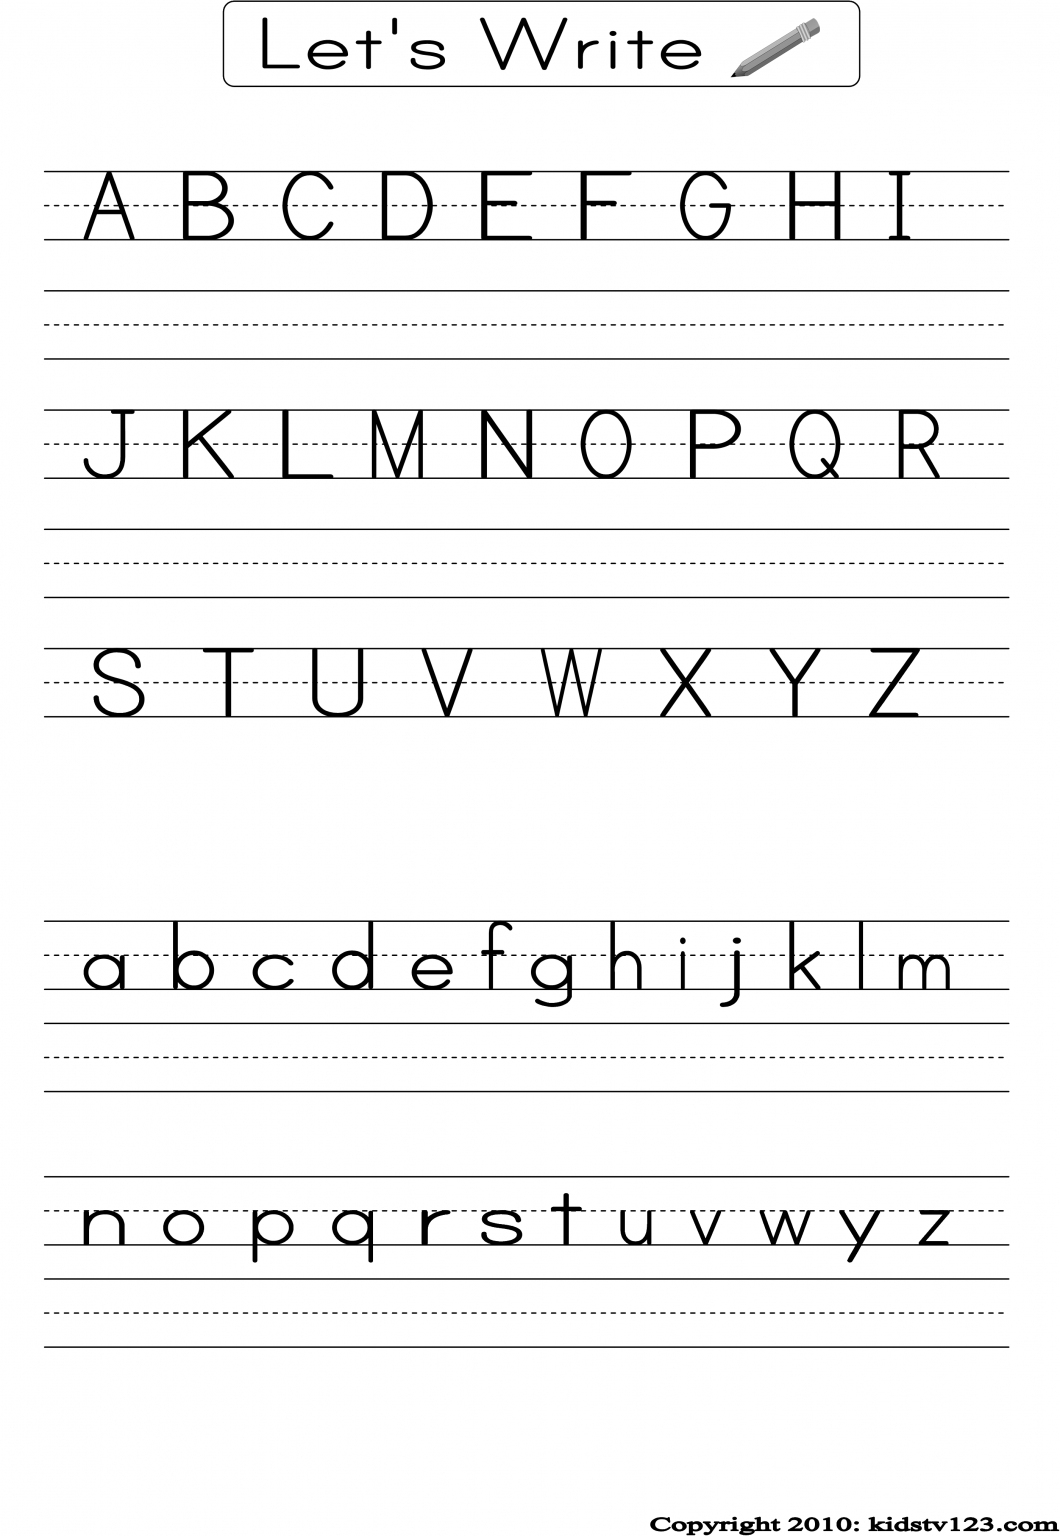 Free Preschool Writing Worksheets – With Printables For Kindergarten | Free Printable Writing Worksheets